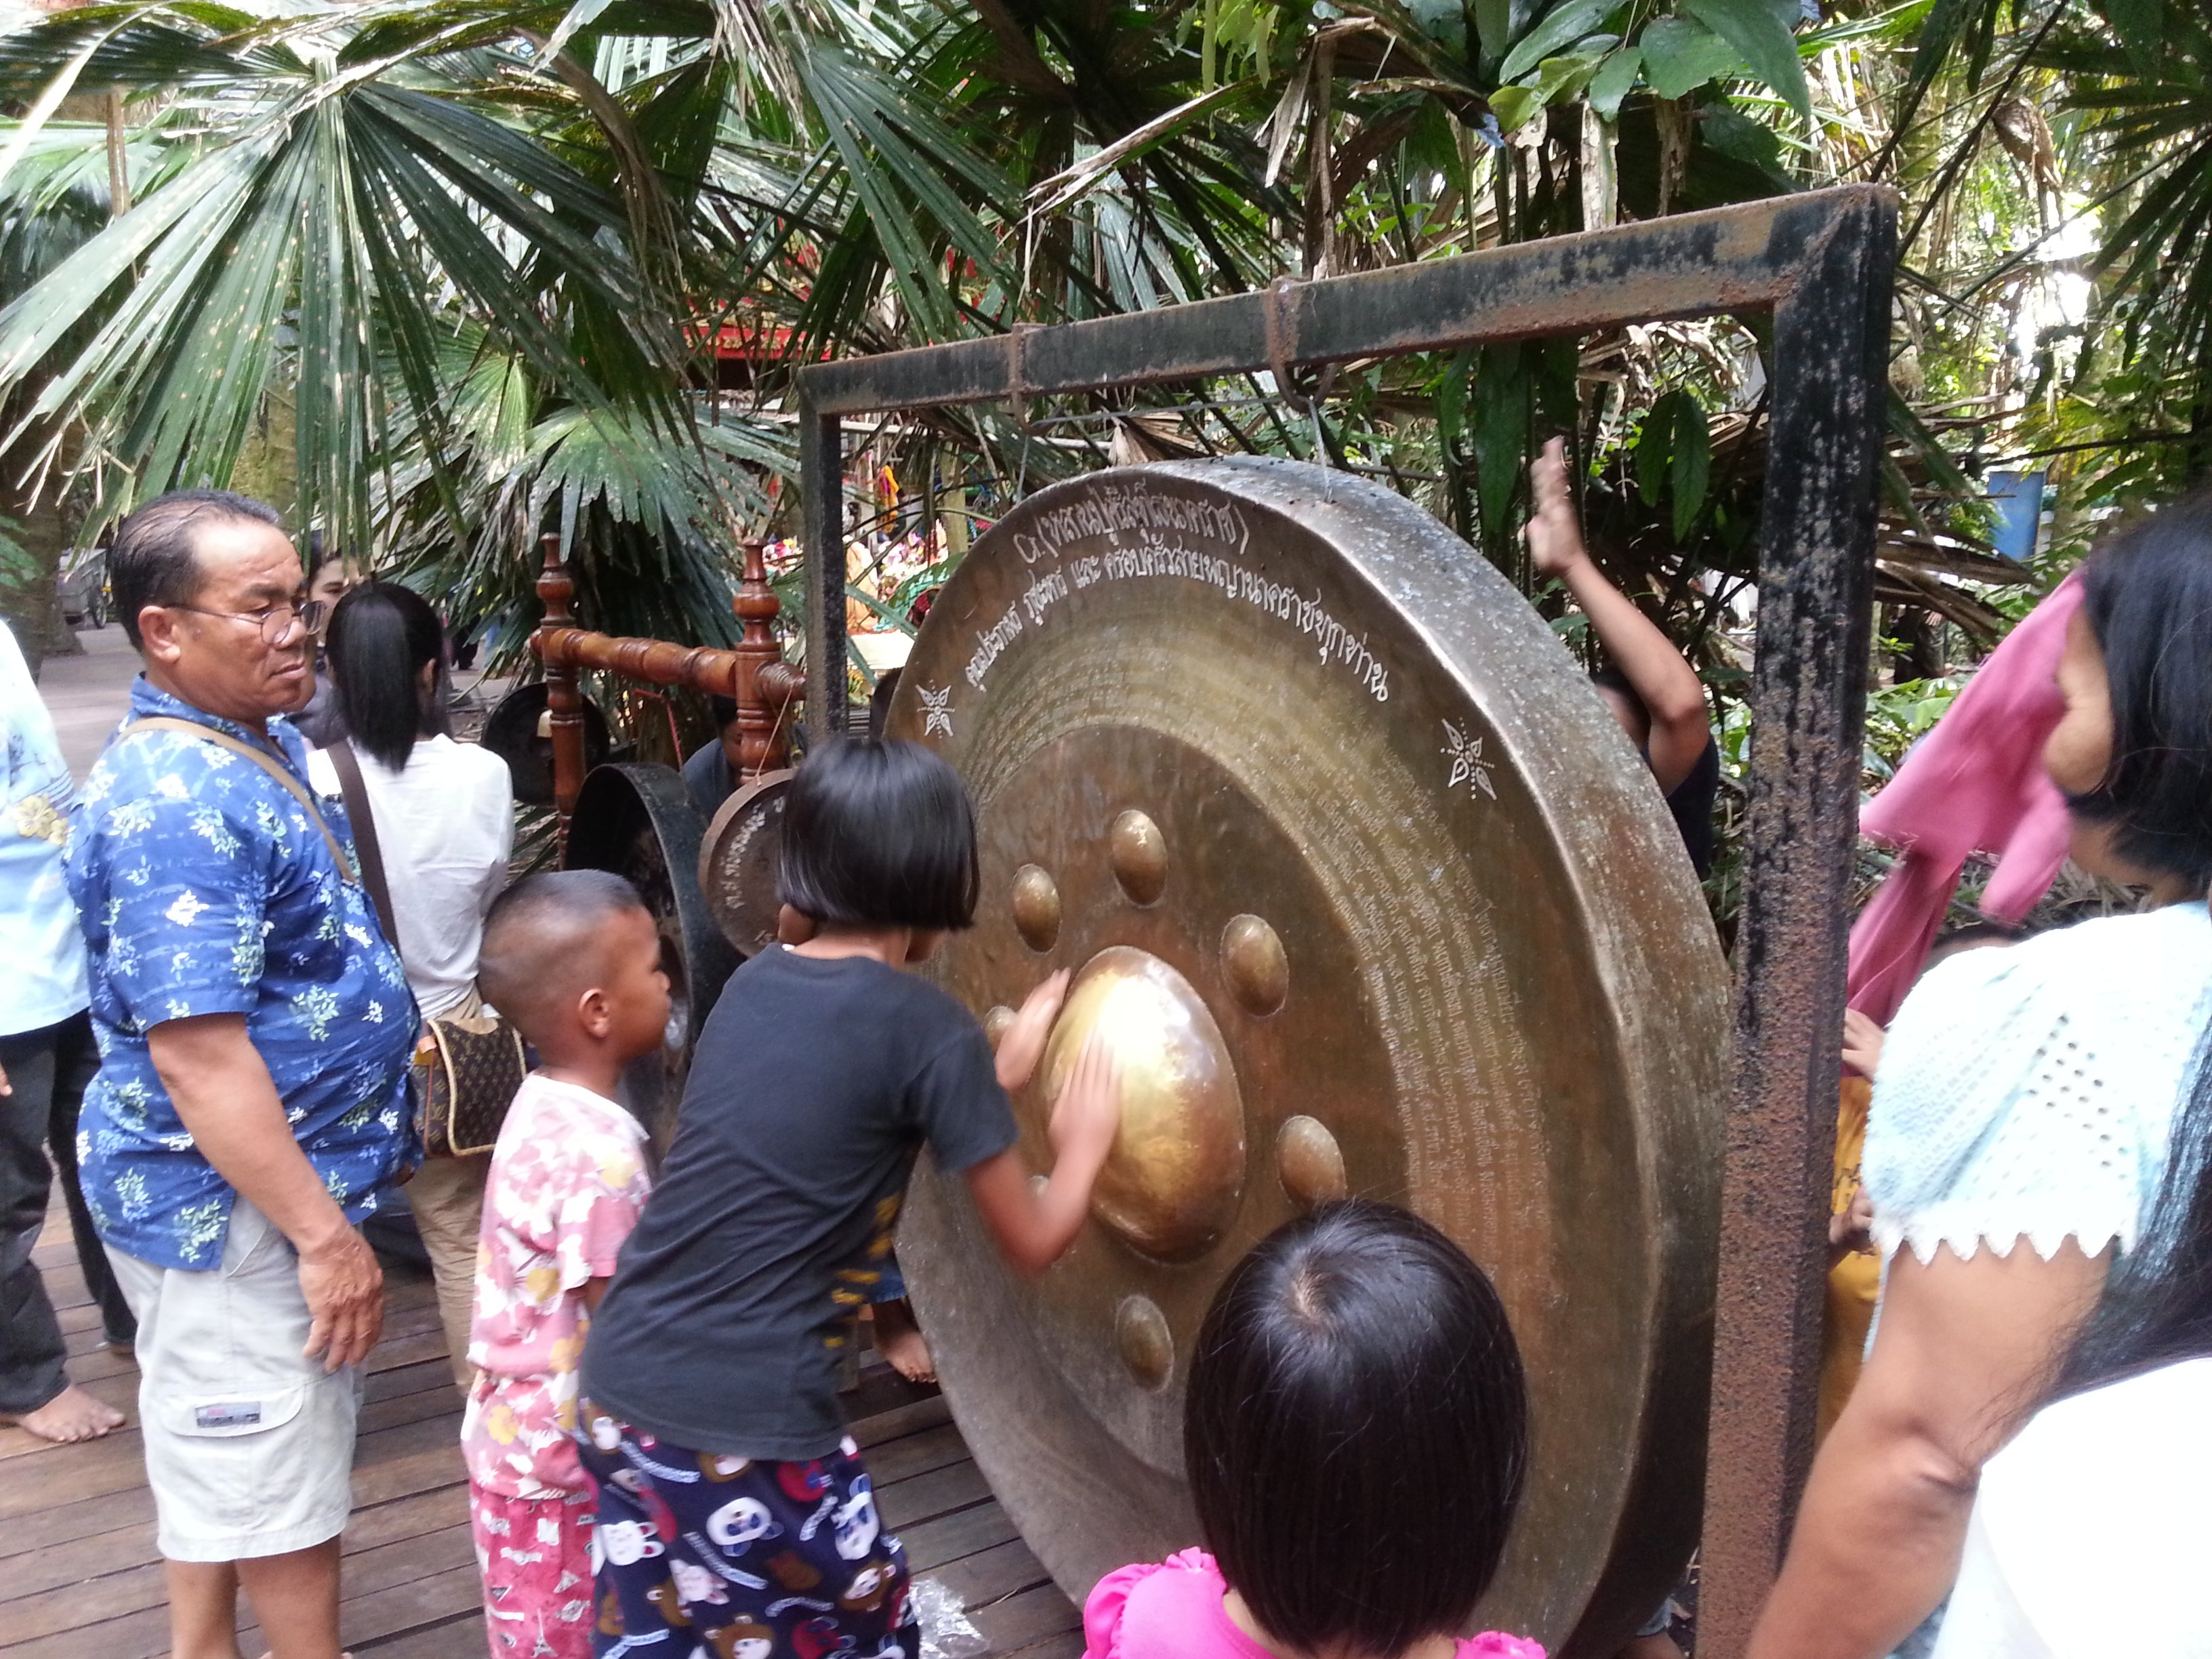 Making the gong sing to ensure your wish is fulfilled